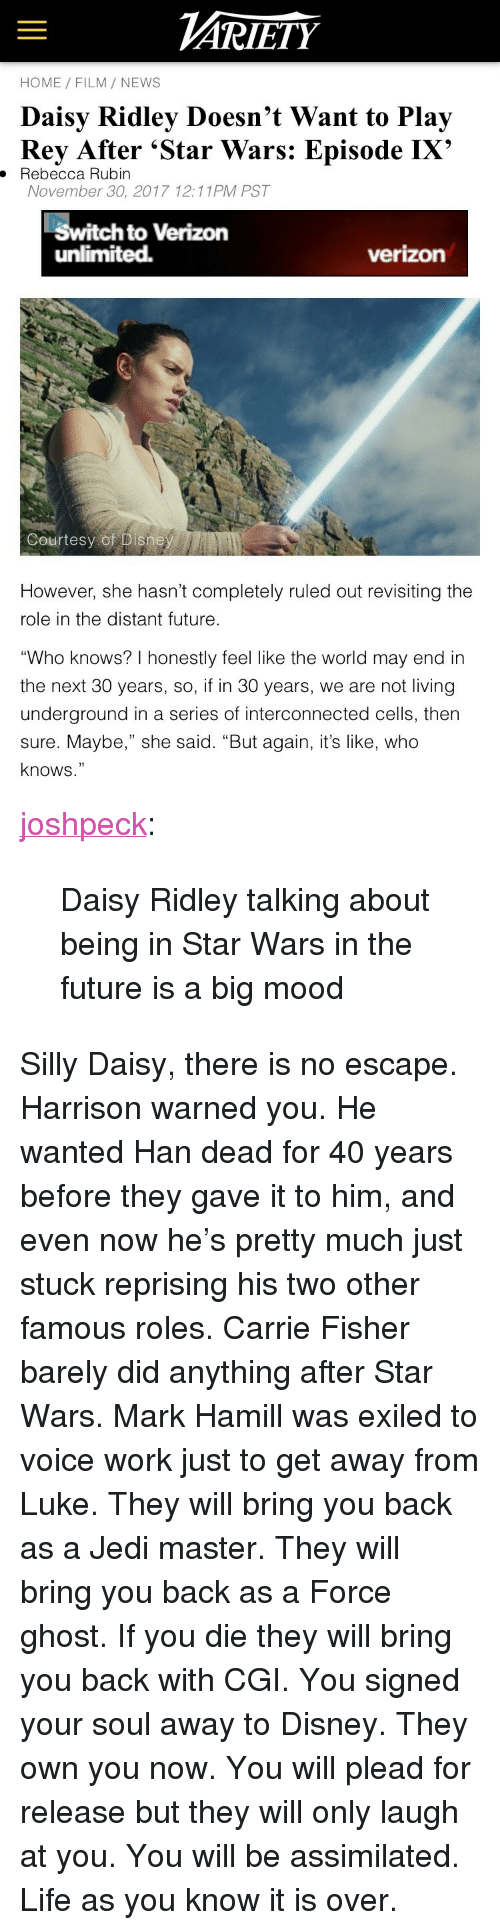 """Carrie Fisher: ARİETY  HOME FILM/ NEWS  Daisy Ridley Doesn't Want to Play  Rey After 'Star Wars: Episode IX'  . Rebecca Rubin  November 30, 2017 12:11PM PST  Switch to Verizon  unlimited.  verizon  Courtesy of Disne   However, she hasn't completely ruled out revisiting the  role in the distant future  """"Who knows? I honestly feel like the world may end in  the next 30 years, so, if in 30 years, we are not living  underground in a series of interconnected cells, then  sure. Maybe,"""" she said. """"But again, it's like, who  knows."""" <p><a href=""""http://joshpeckofficial.com/post/168948838043/daisy-ridley-talking-about-being-in-star-wars-in"""" class=""""tumblr_blog"""">joshpeck</a>:</p>  <blockquote><p>Daisy Ridley talking about being in Star Wars in the future is a big mood</p></blockquote>  <p>Silly Daisy, there is no escape. Harrison warned you. He wanted Han dead for 40 years before they gave it to him, and even now he's pretty much just stuck reprising his two other famous roles. Carrie Fisher barely did anything after Star Wars. Mark Hamill was exiled to voice work just to get away from Luke. They will bring you back as a Jedi master. They will bring you back as a Force ghost. If you die they will bring you back with CGI. You signed your soul away to Disney. They own you now. You will plead for release but they will only laugh at you. You will be assimilated. Life as you know it is over.</p>"""